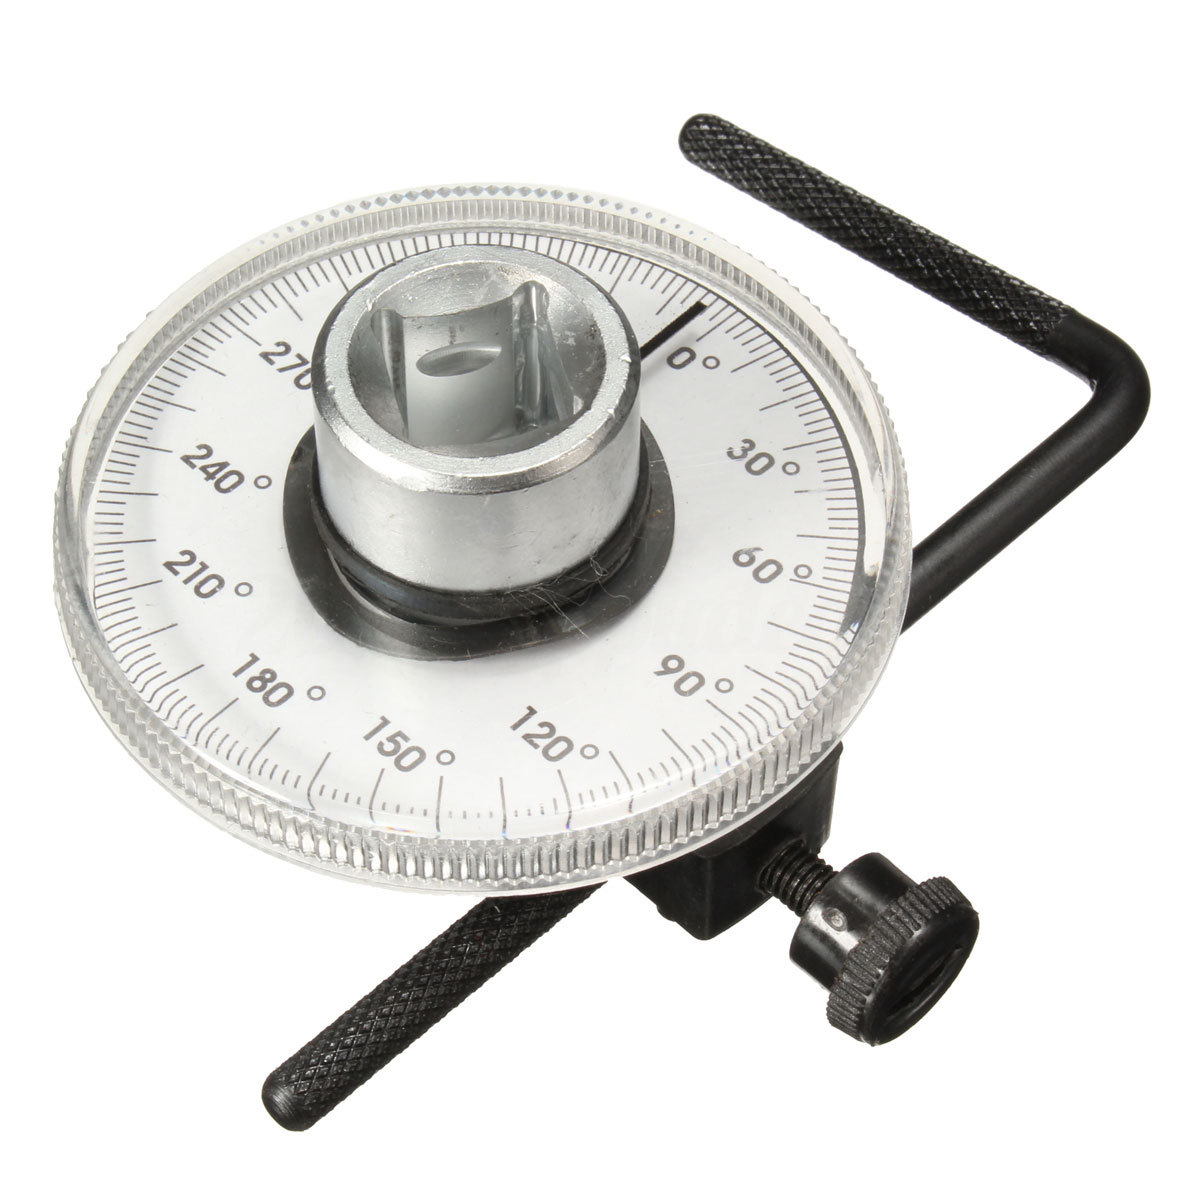 Universal Professional 1/2 inch Adjustable Driver Torque Angle Gauge Auto Garage Tool Set 360 Degree Scale for Hand Tools Wrench